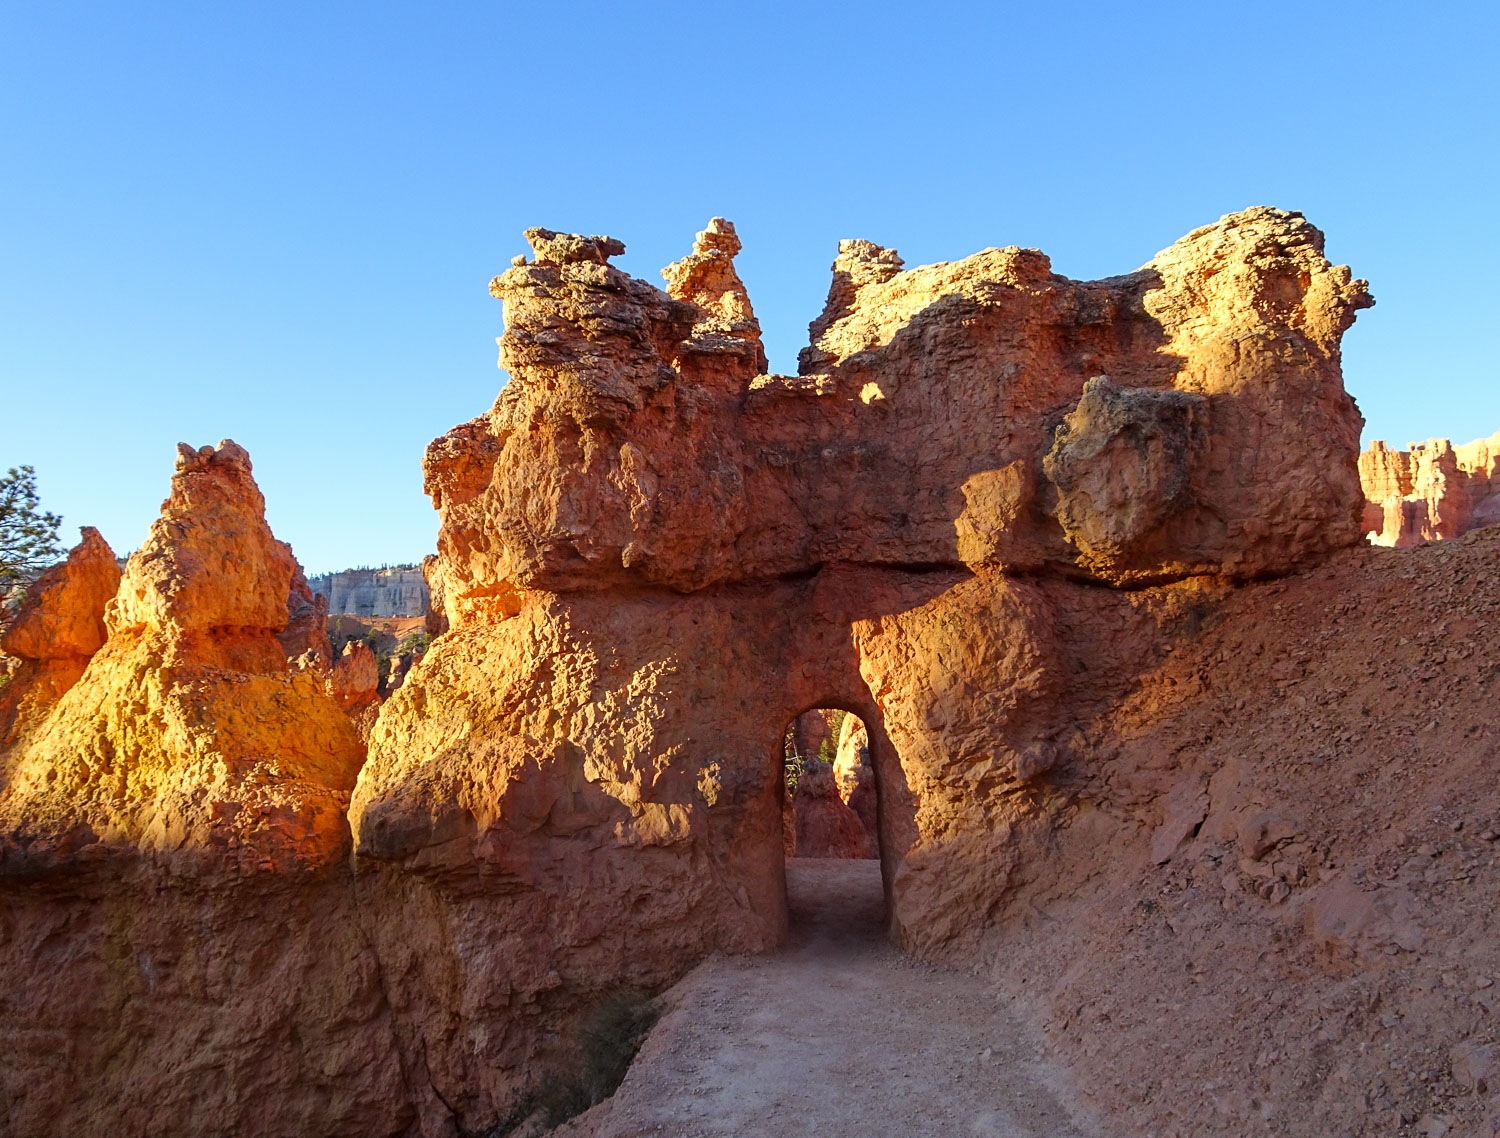 More real-life sandcastles to hike through